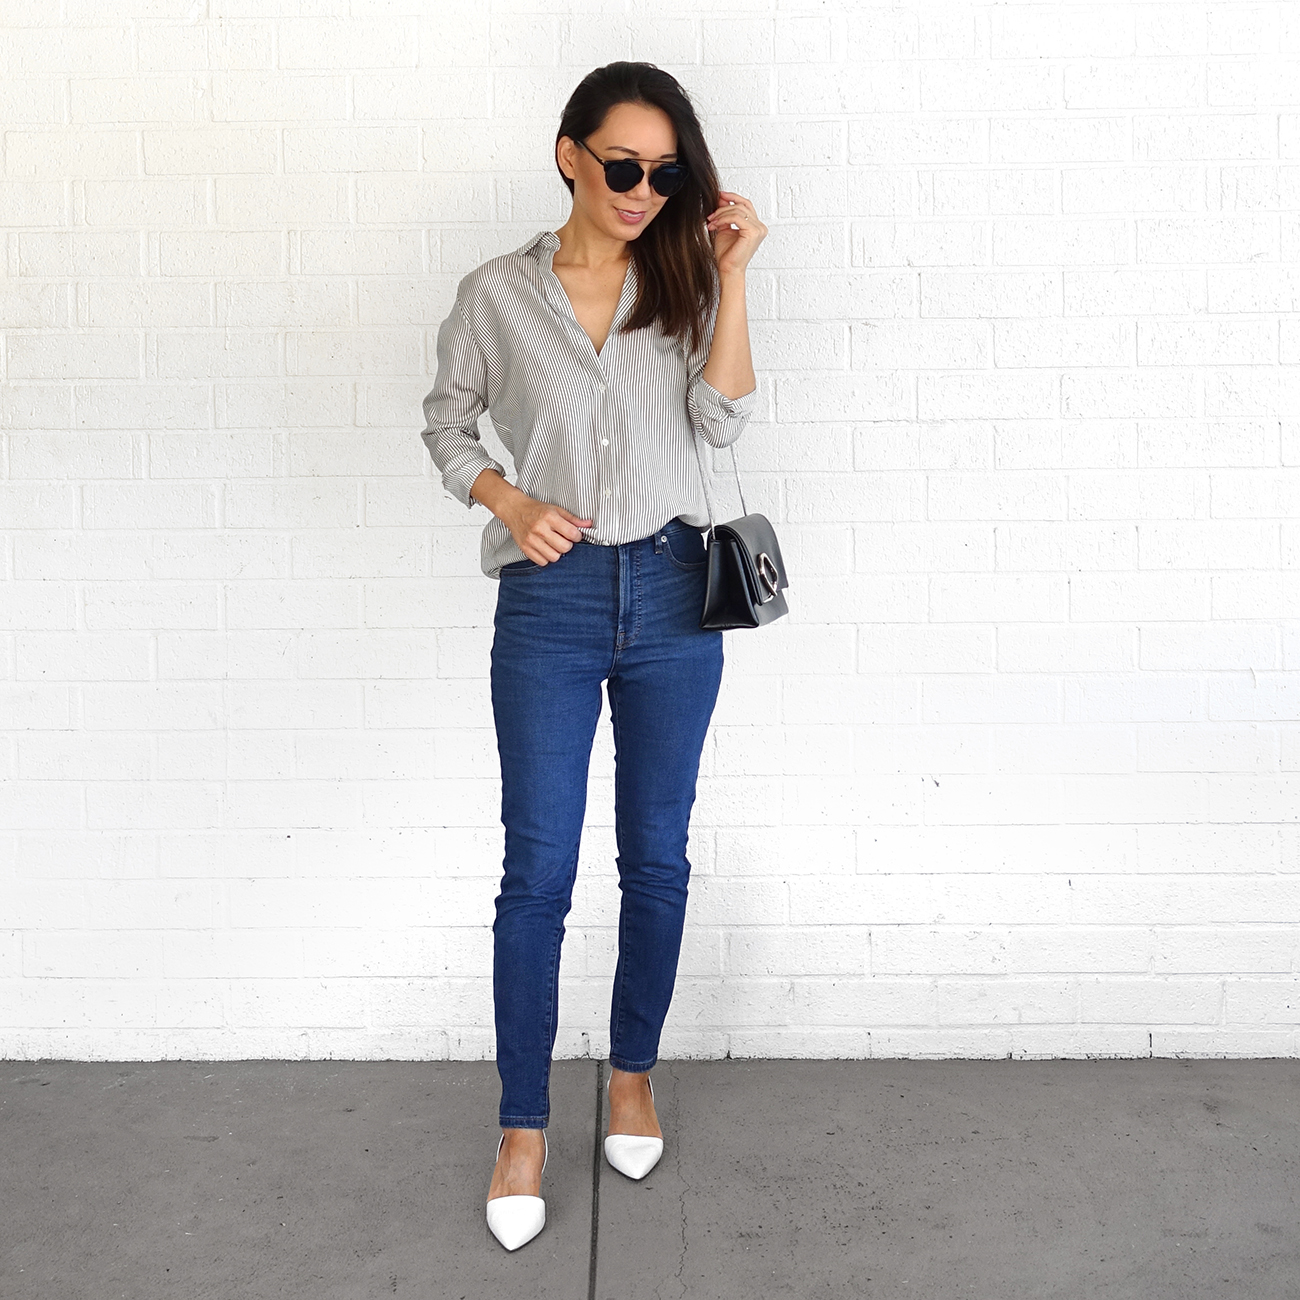 Everlane Jeans and Silk Shirt